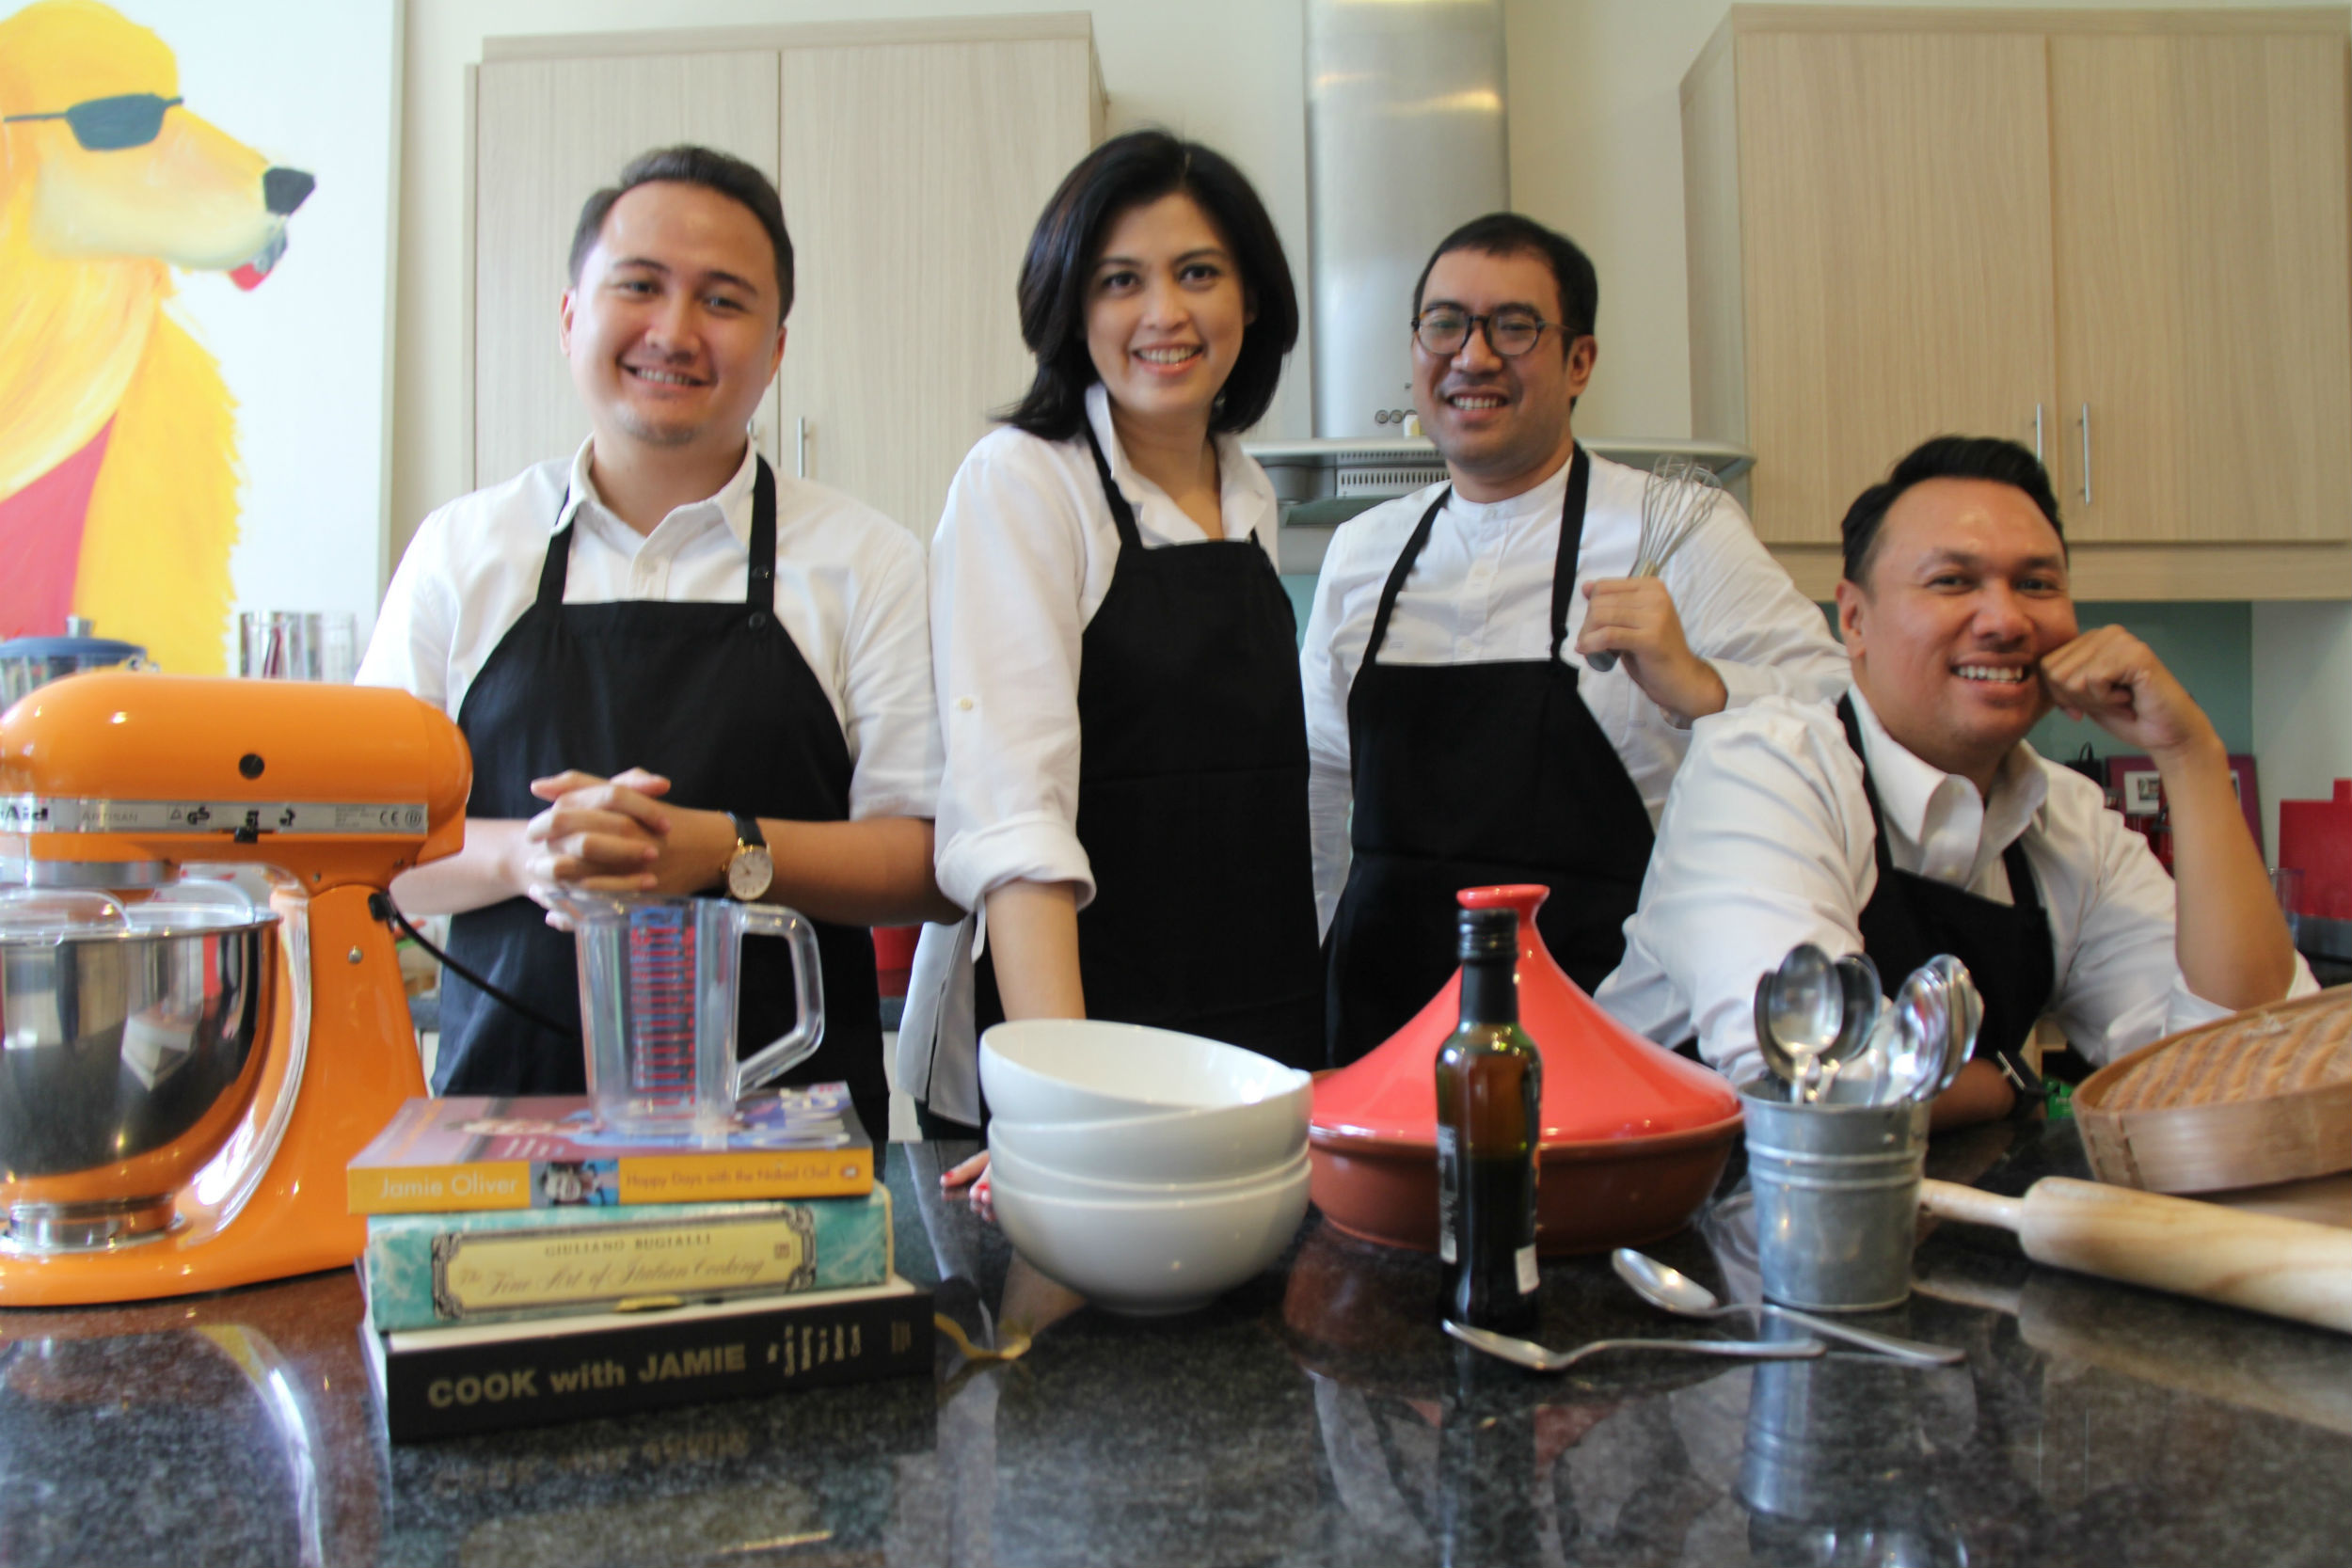 The chefs - Modern Indonesian Cuisine